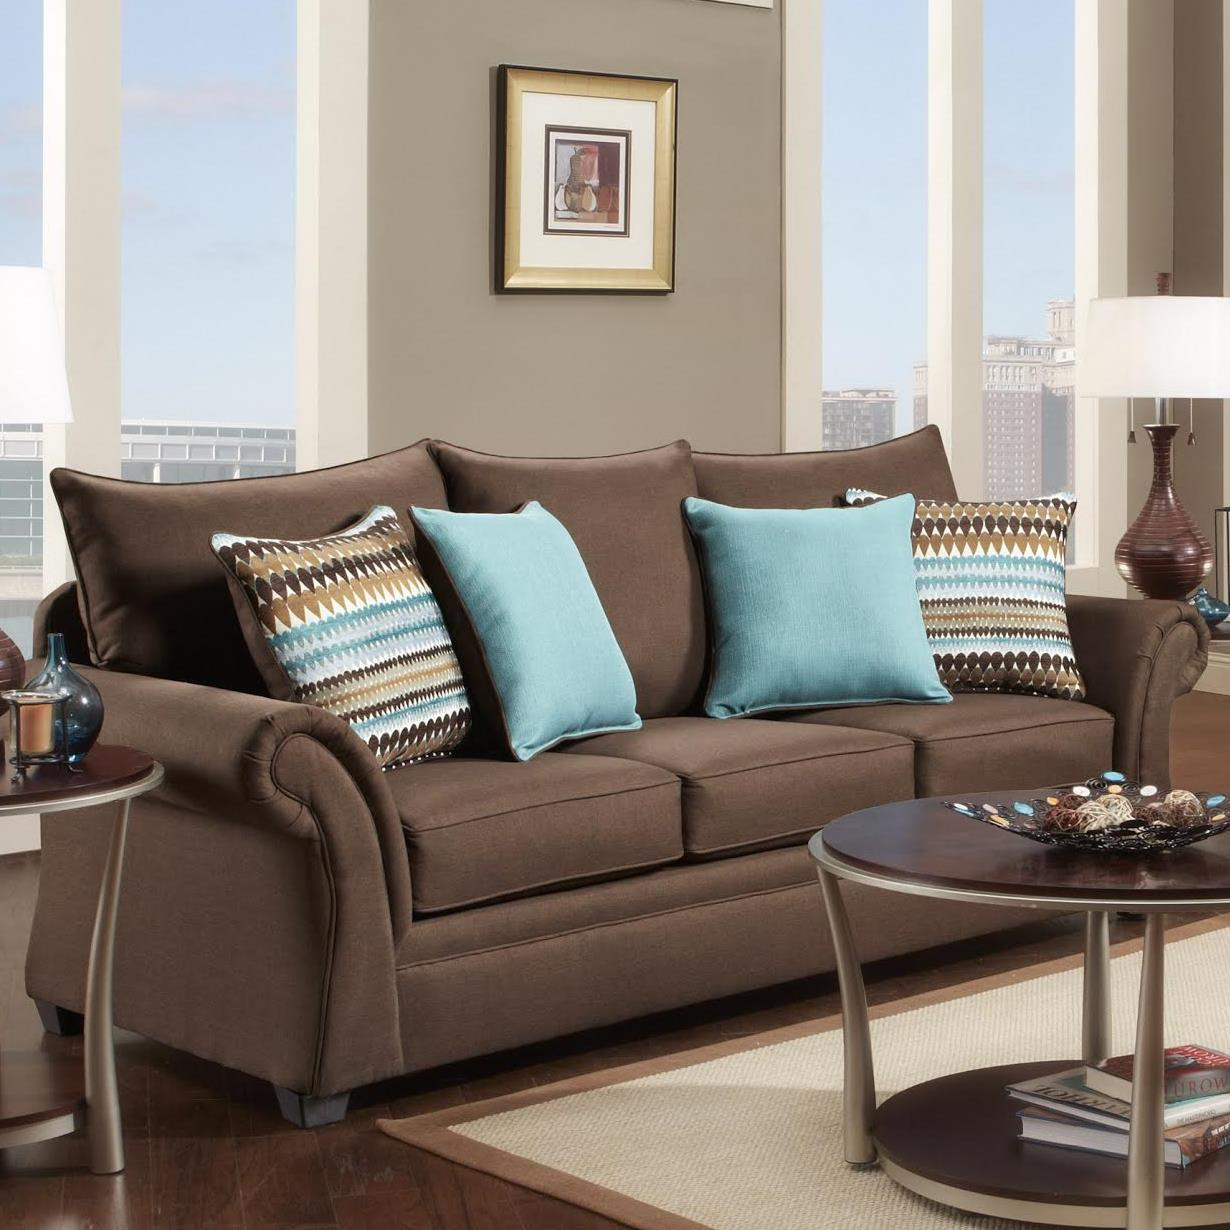 Washington Furniture 1560 Sofa - Item Number: 1562-750 Jitterbug Cocoa